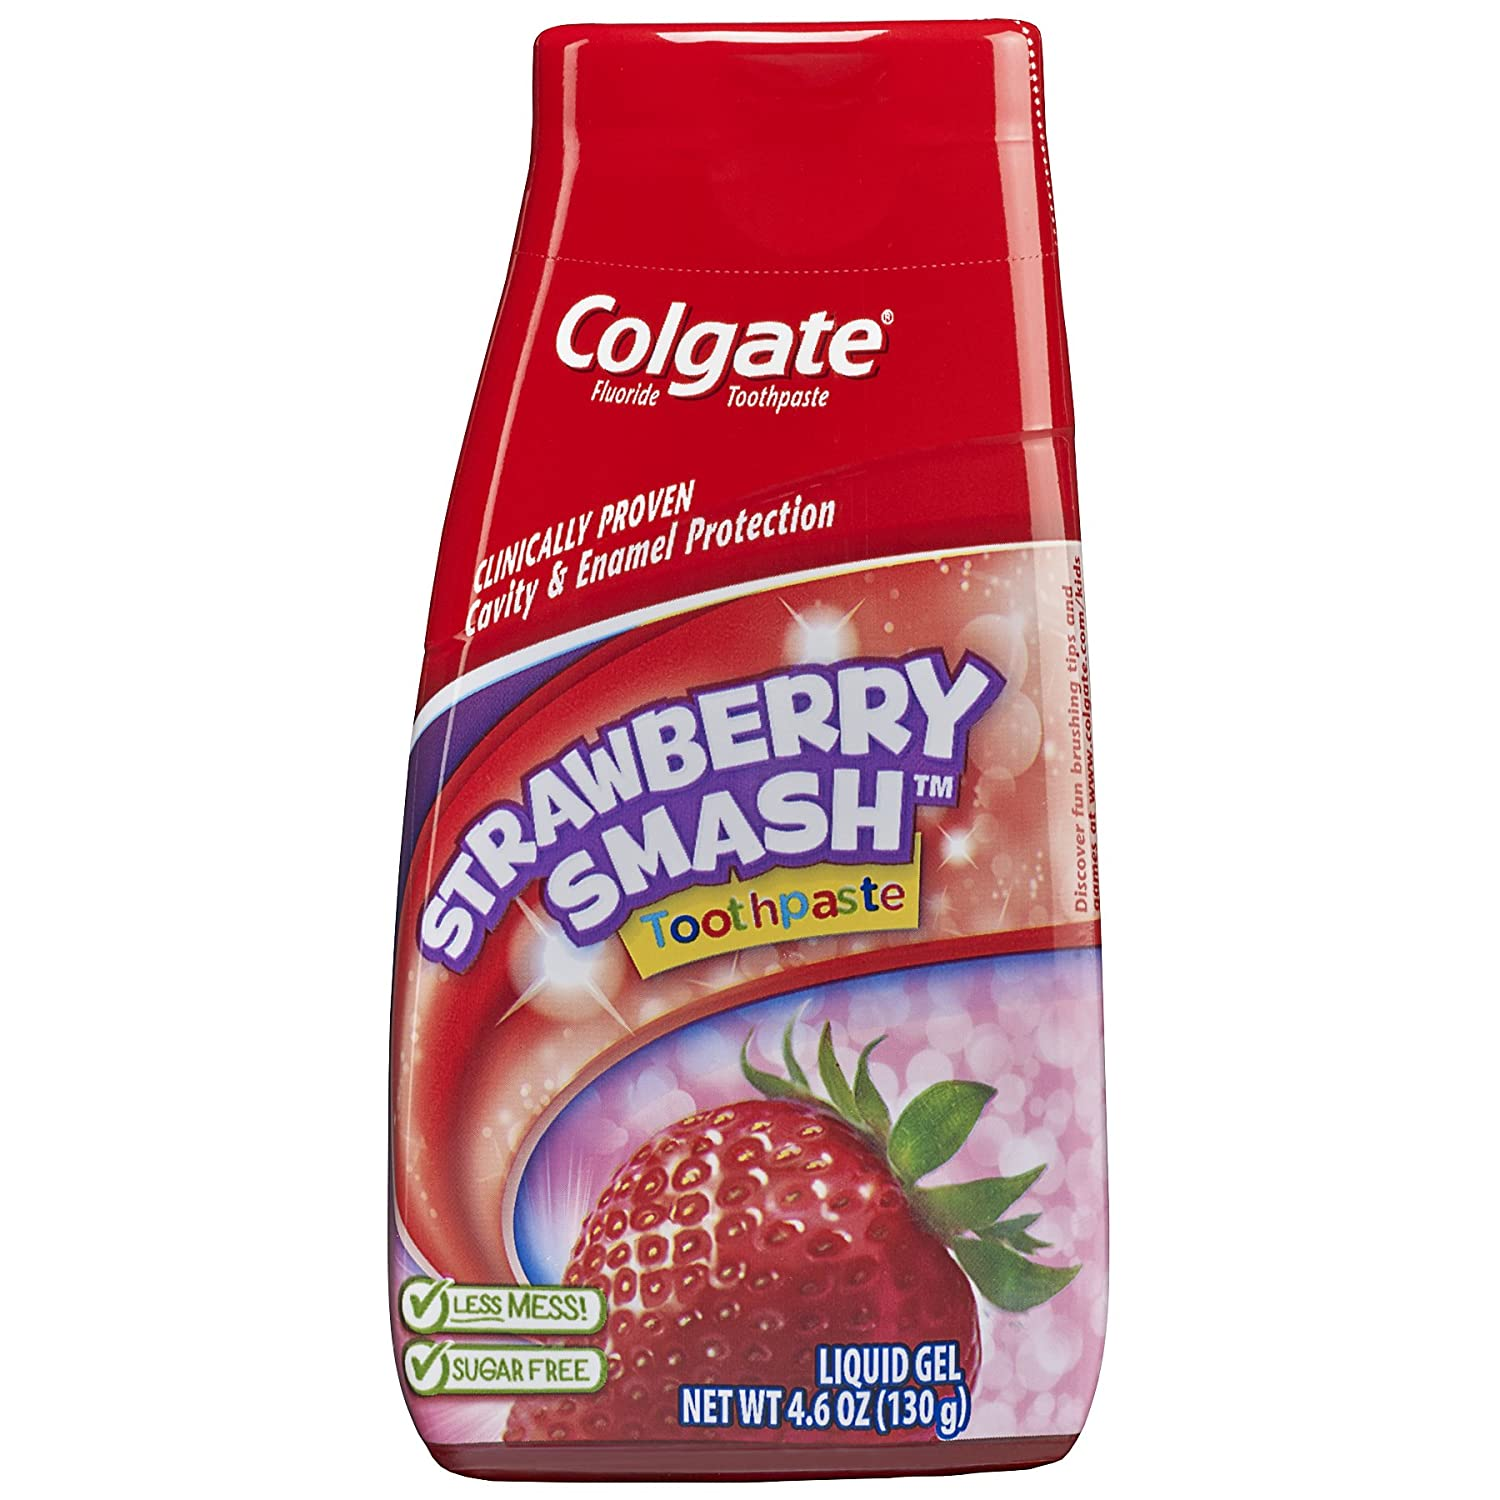 Colgate Kids 2 In 1 Toothpaste & Mouthwash, Strawberry, Liquid Gel, 4.6 Ounce (130 g) 0003500078228